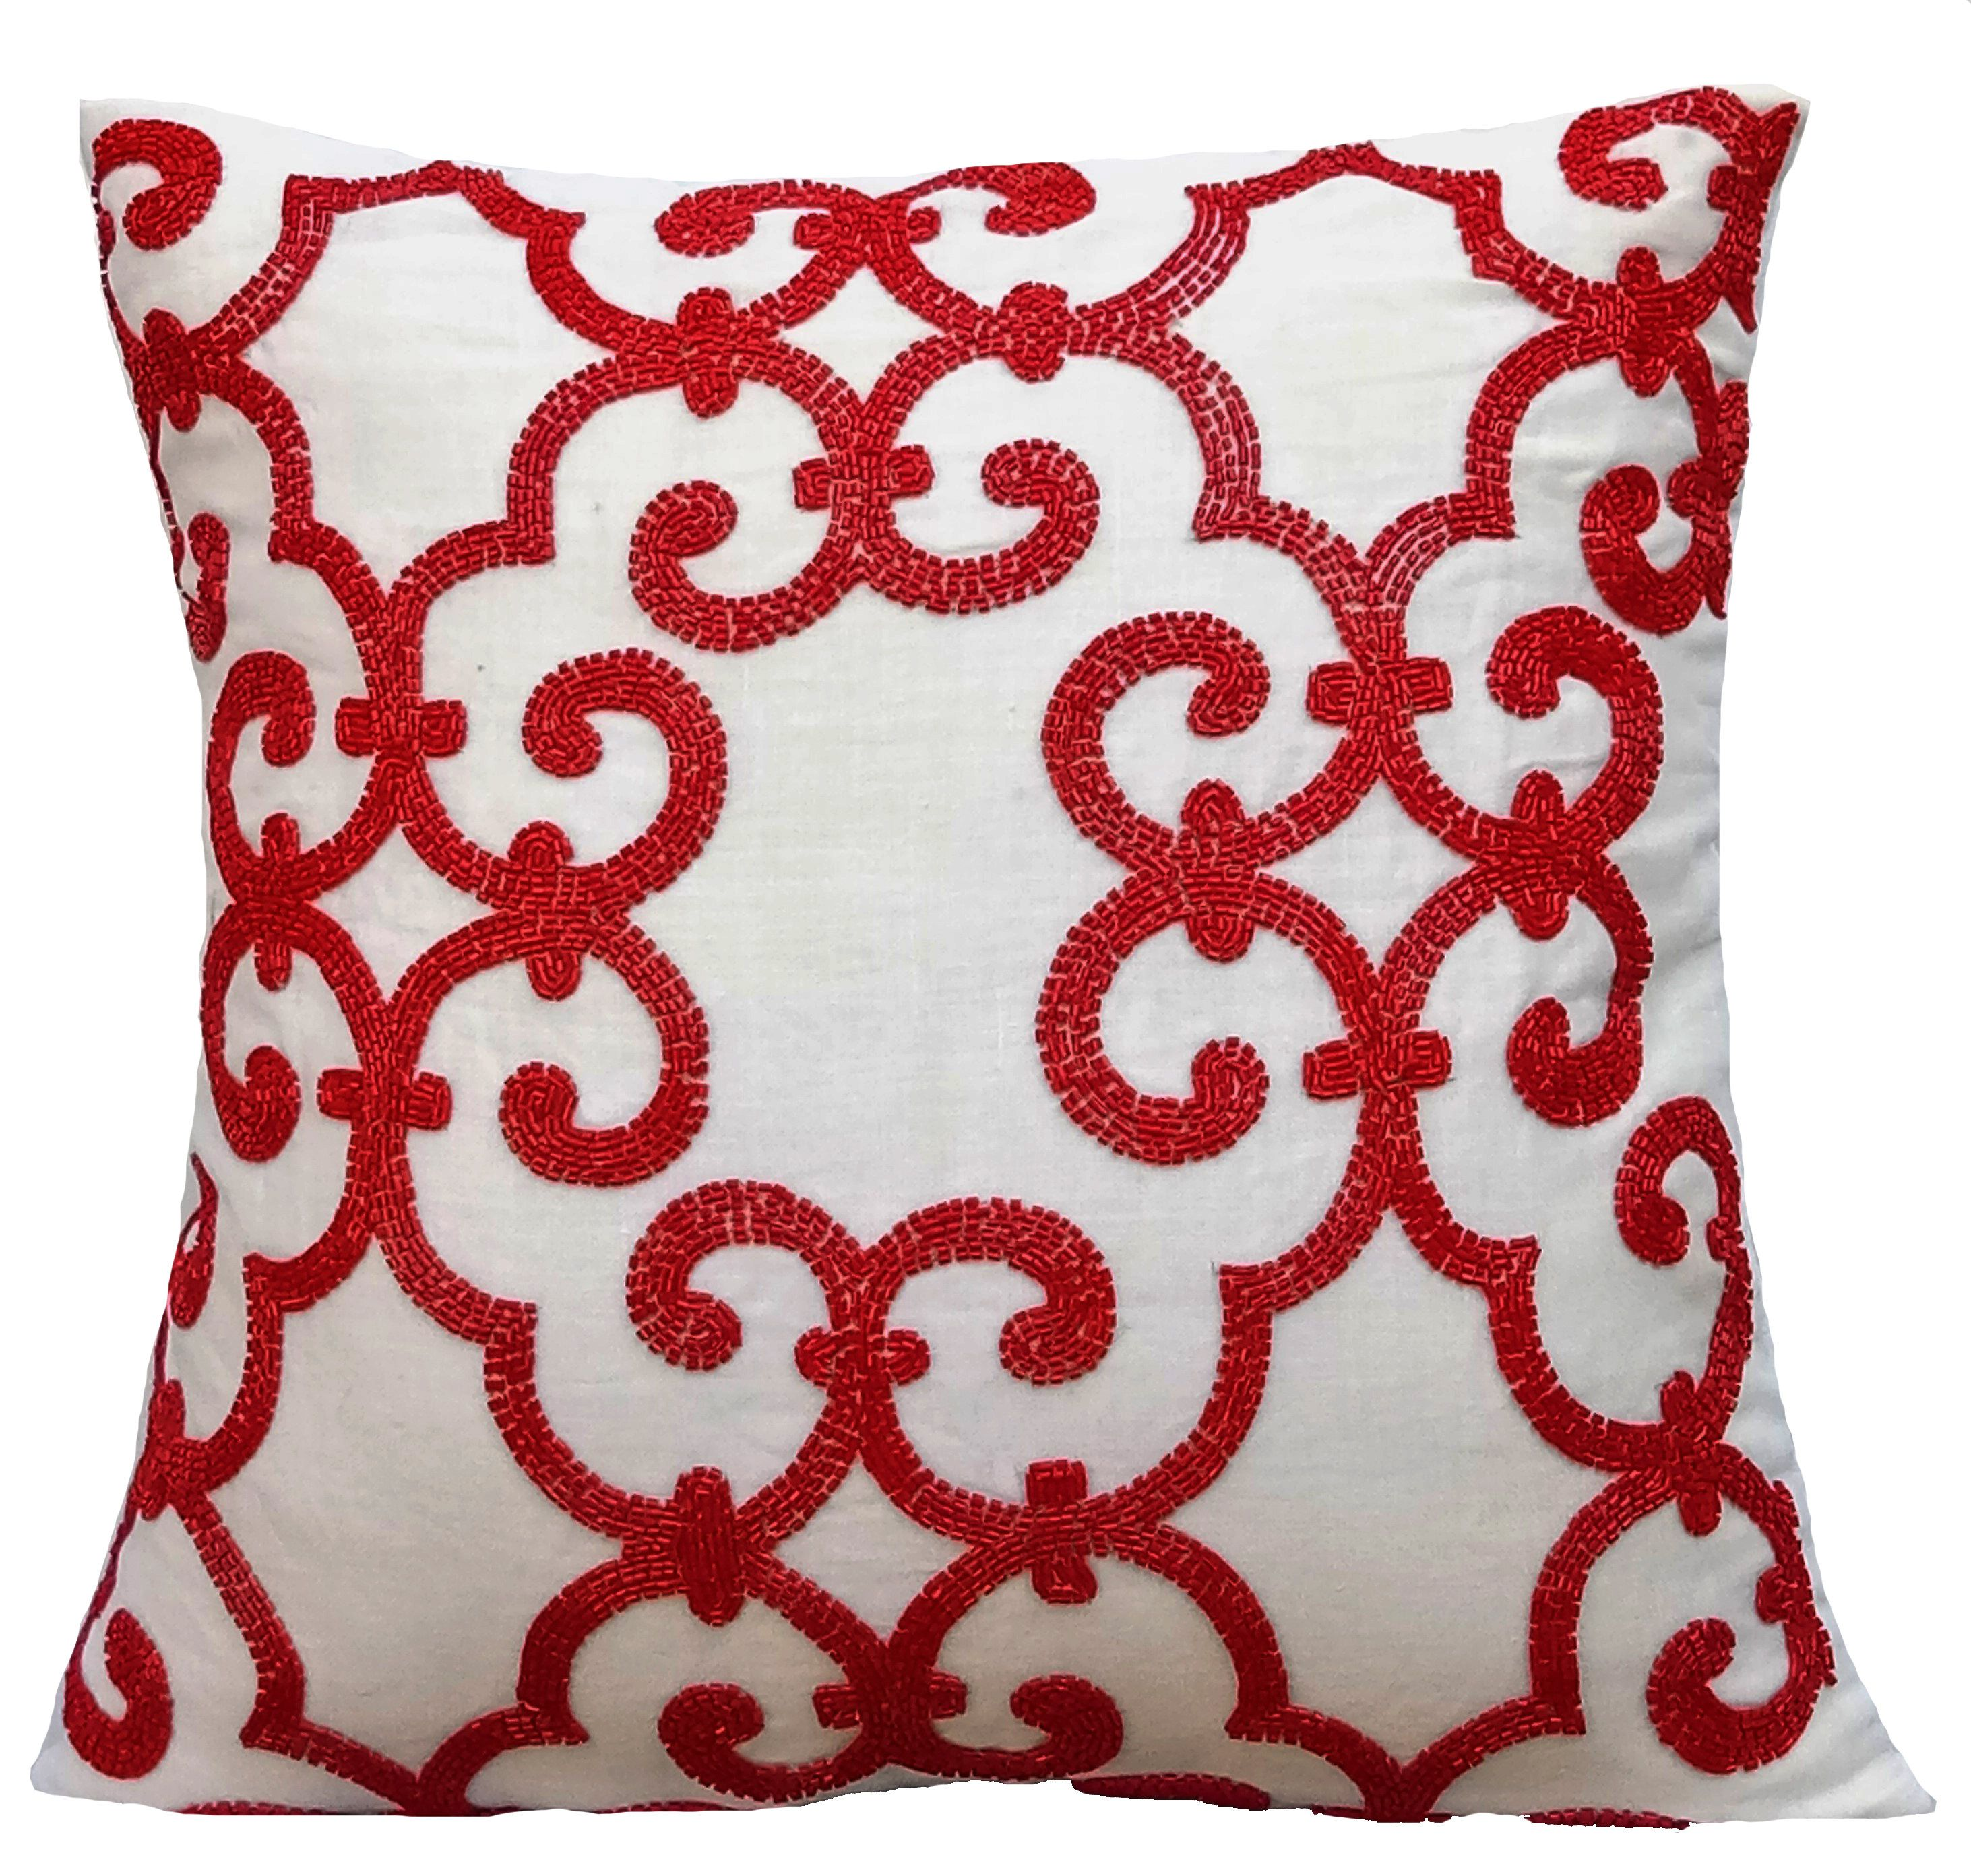 throw pillows royal velvet self solid flange crafted x products hand red pillow designer with cushion